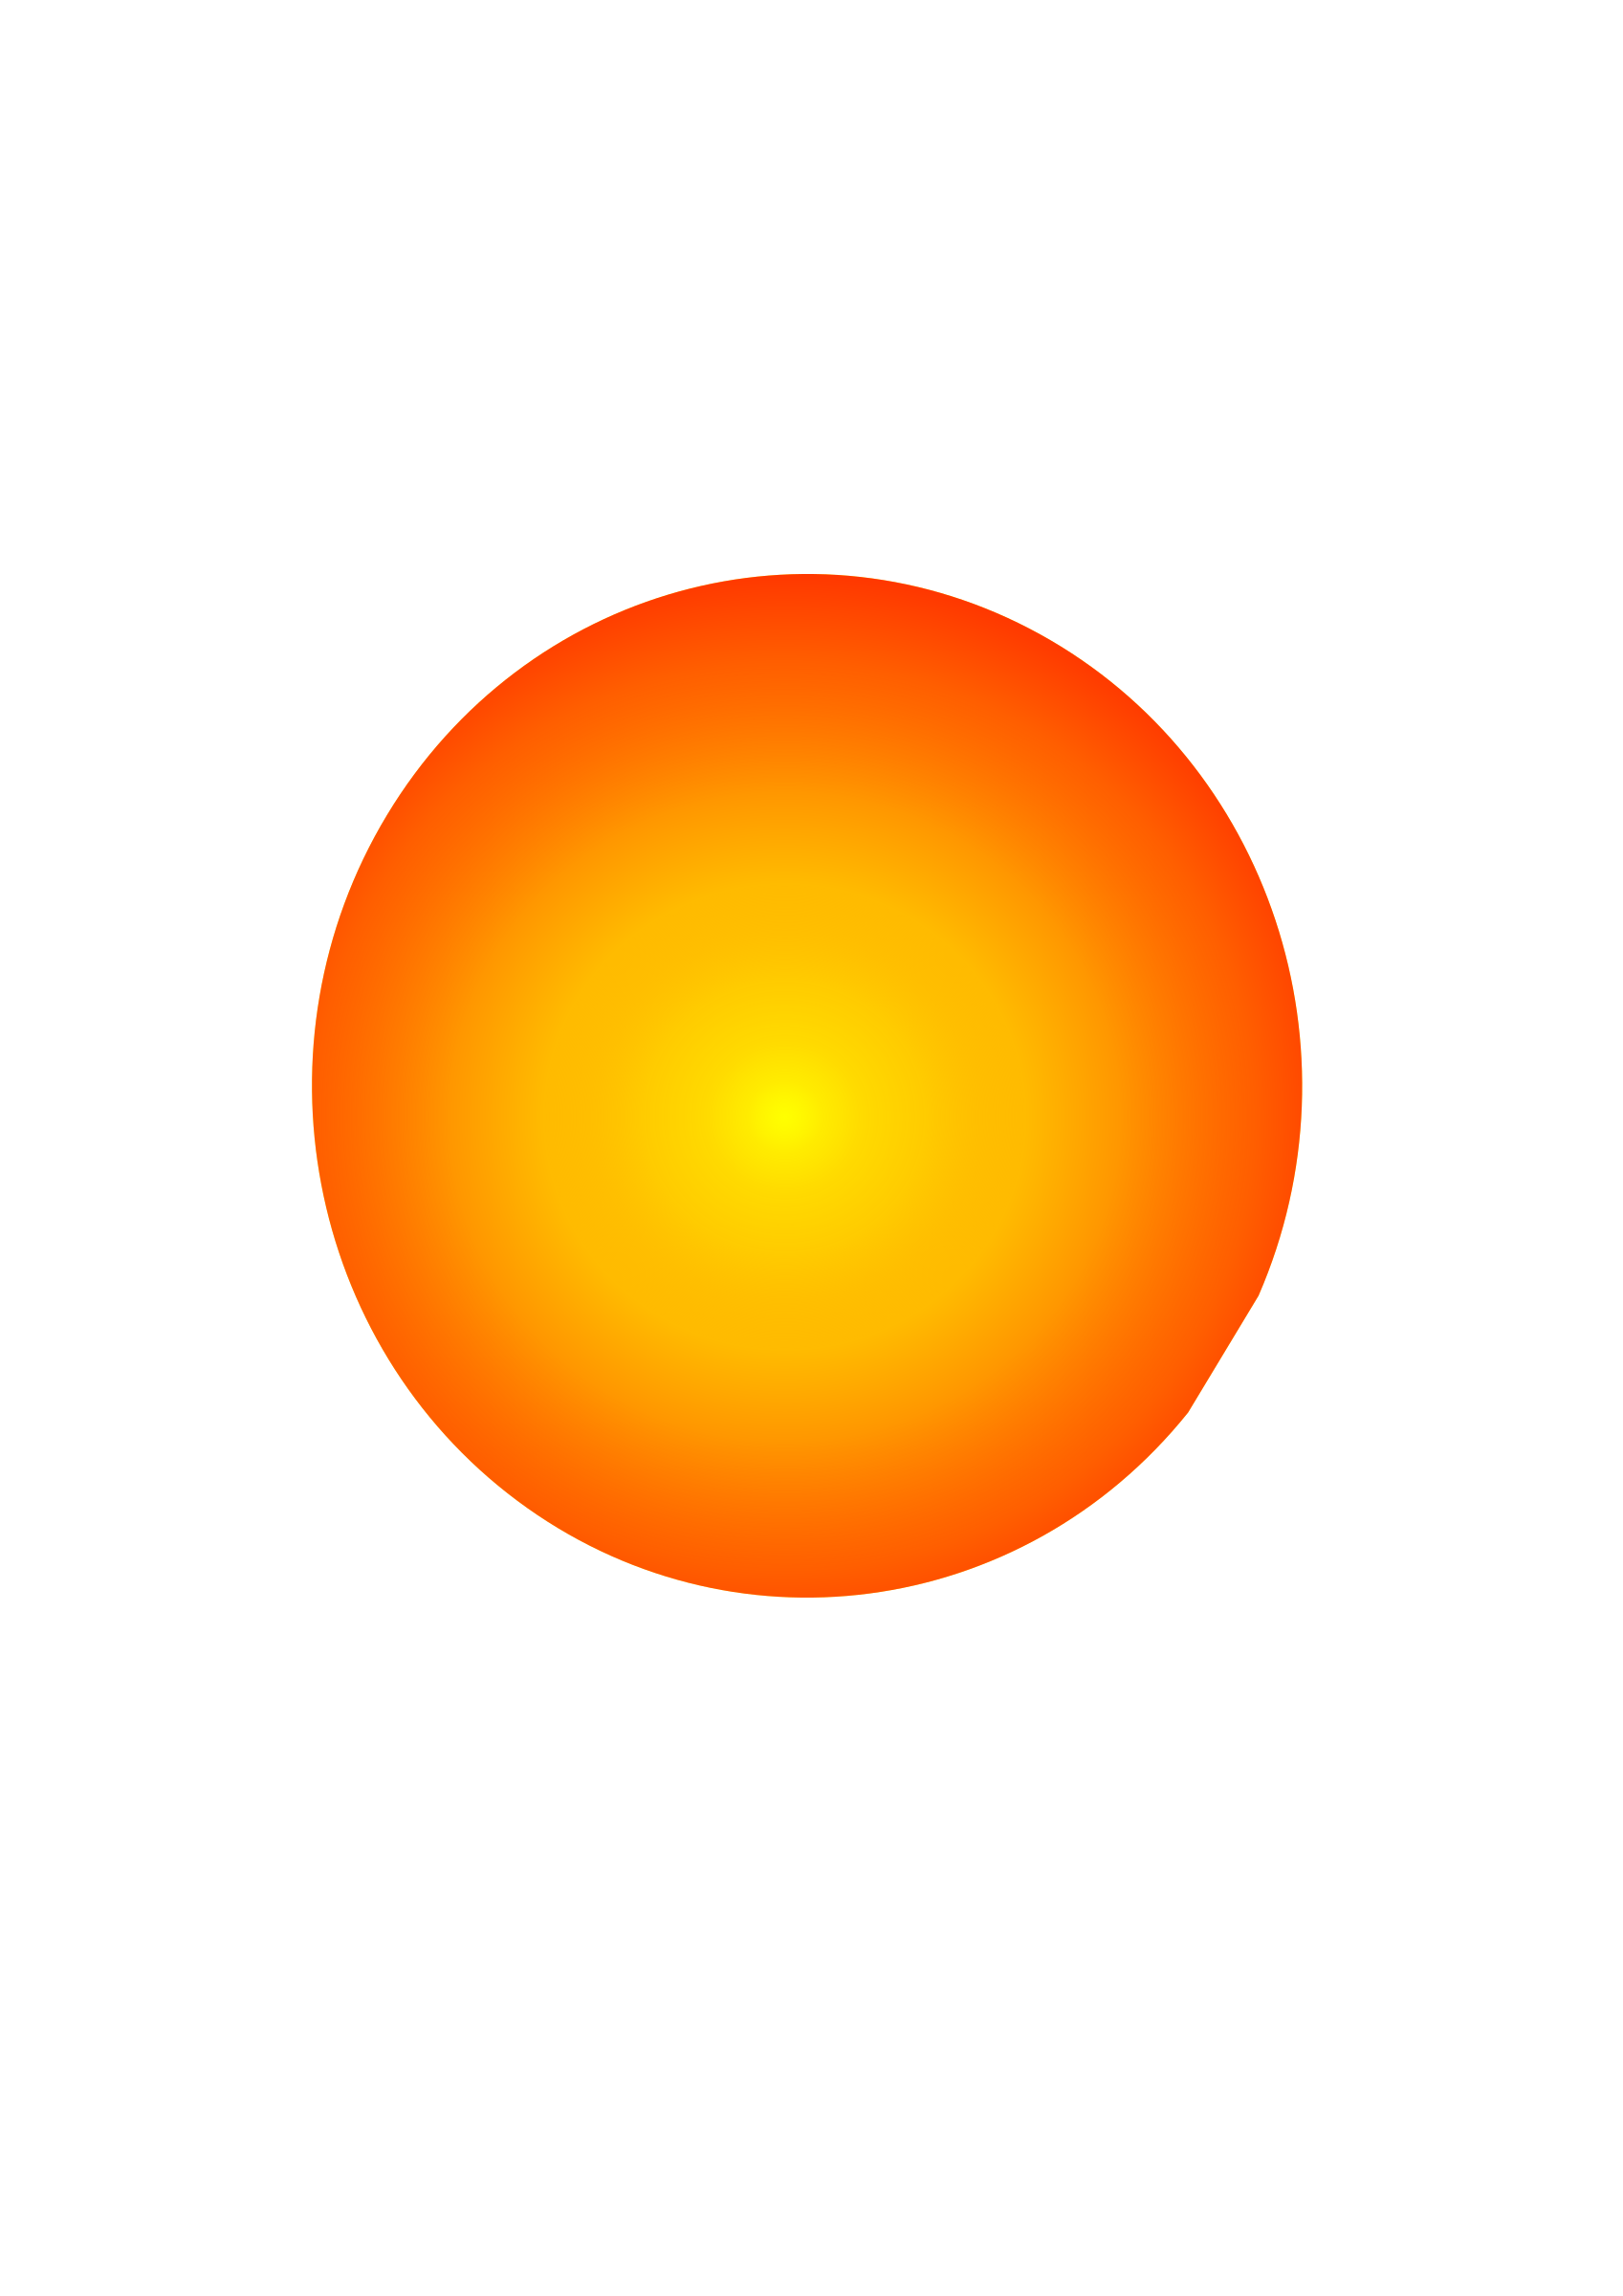 Clipart sun fancy. My planet big image